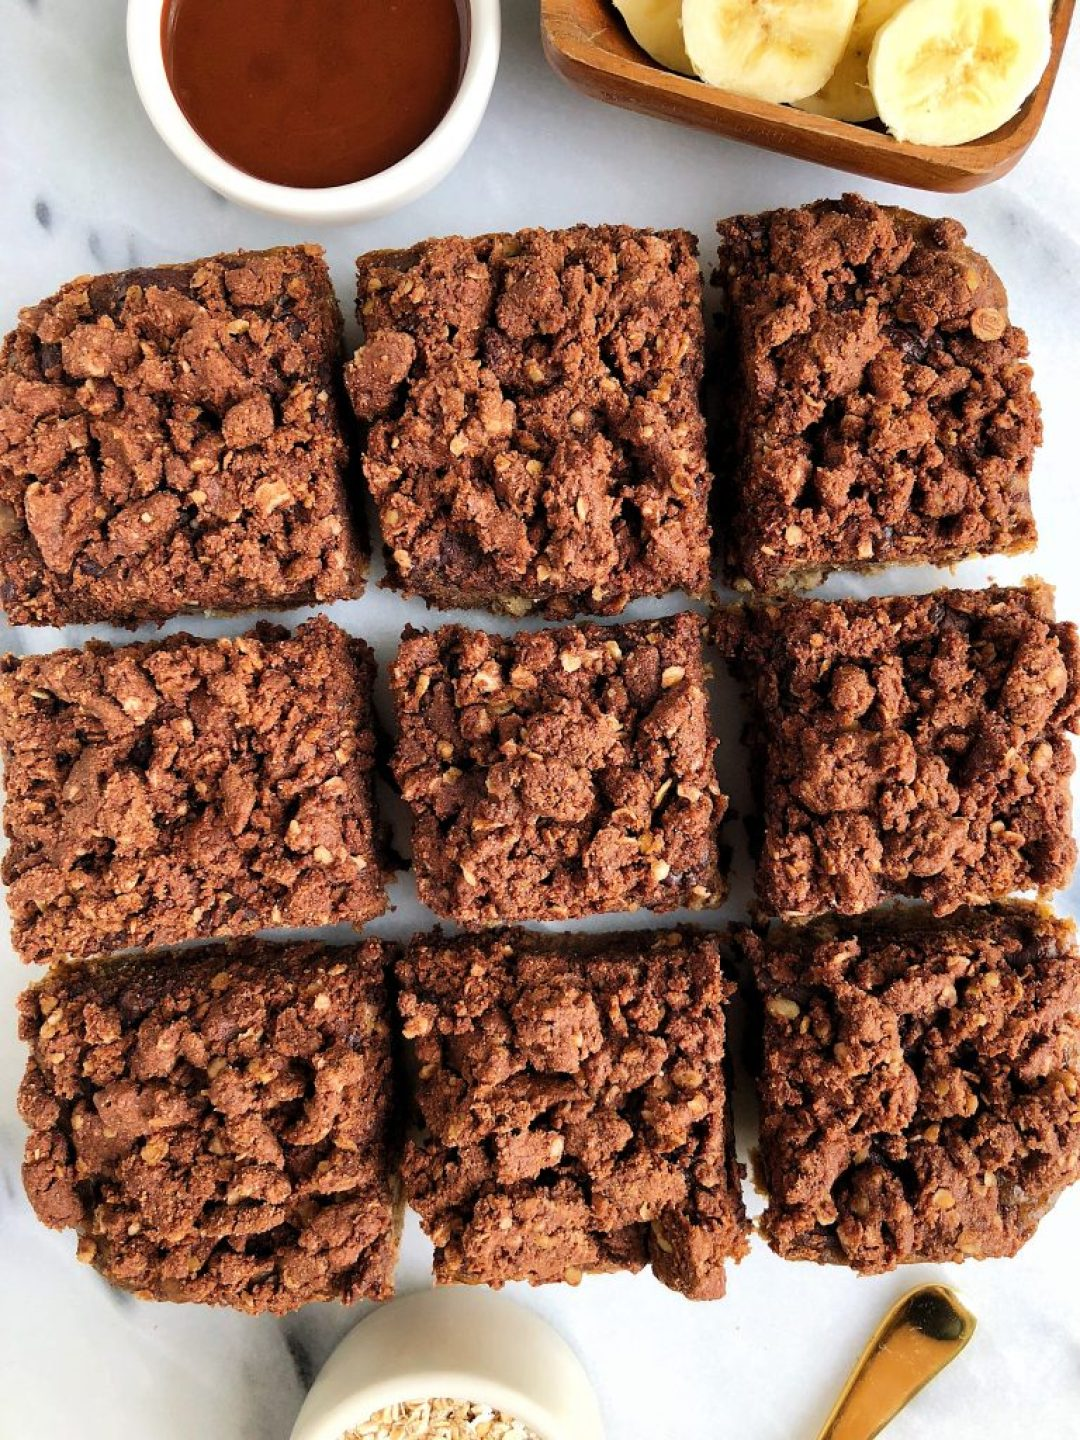 The dreamiest Chocolate Crumb Banana Bread Bars made with vegan, gluten-free and refined sugar-free ingredients!